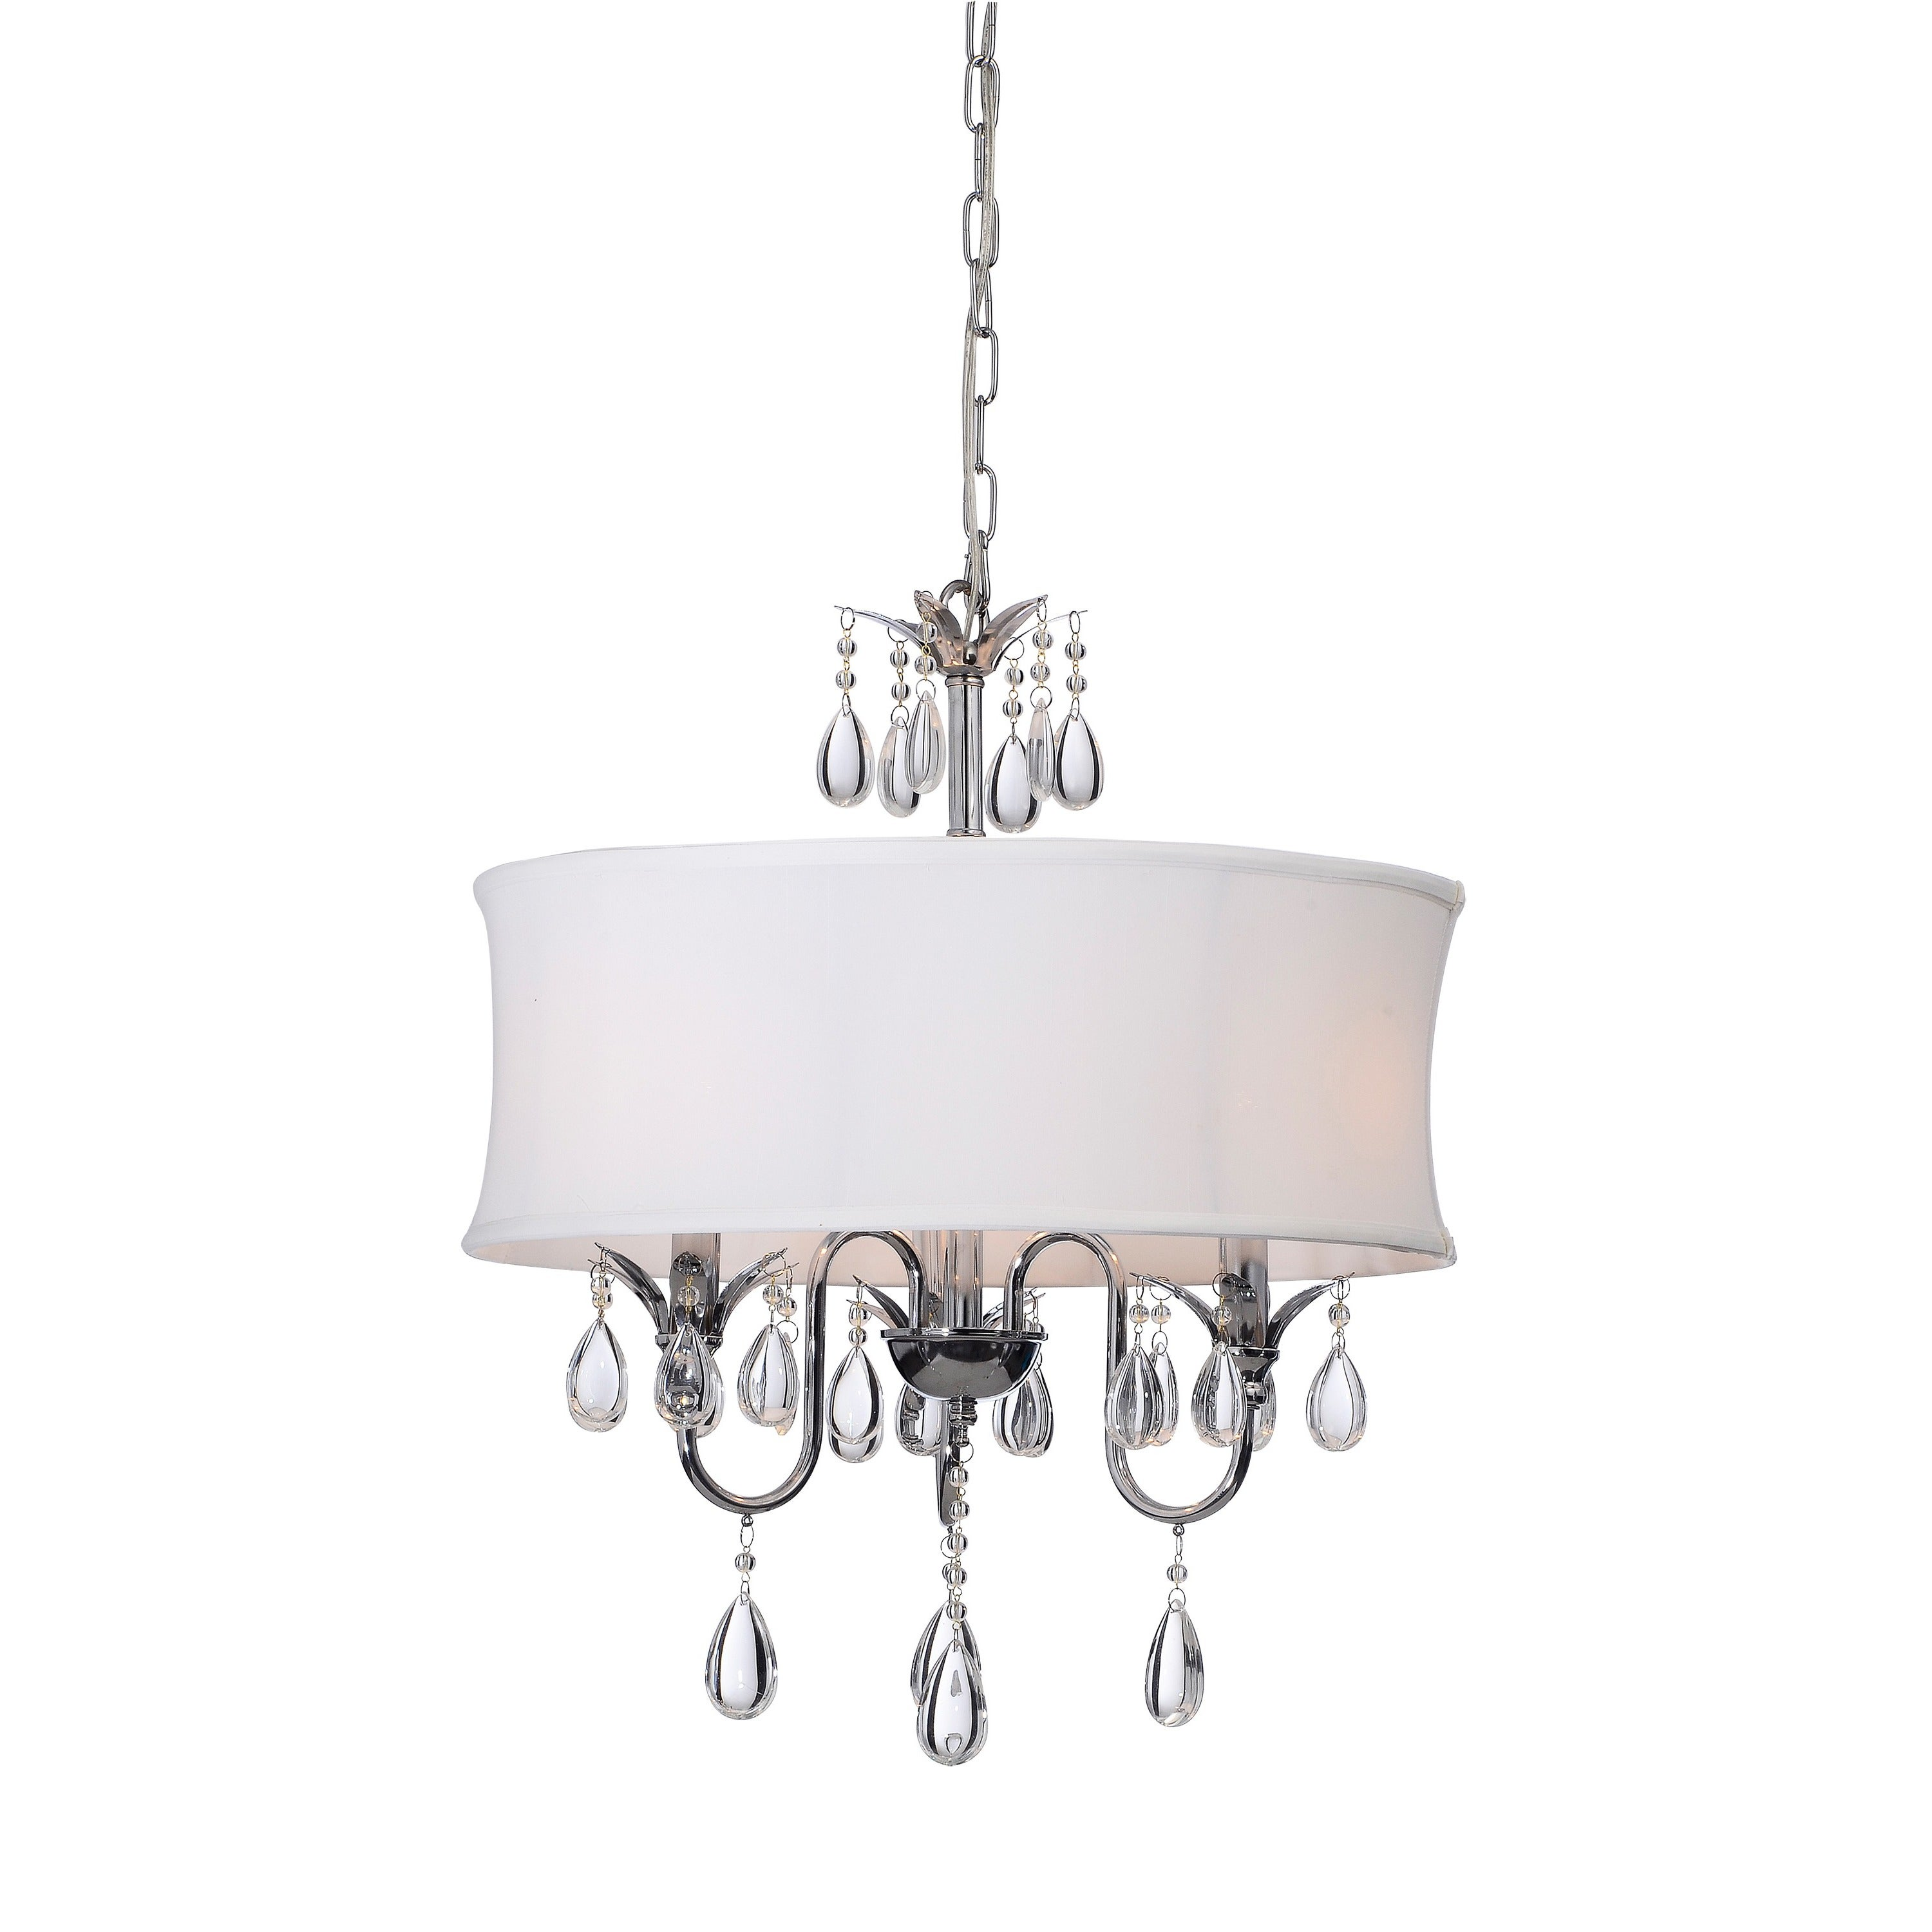 Crystal chrome 3 light chandelier free shipping today crystal chrome 3 light chandelier free shipping today overstock 12253207 arubaitofo Images